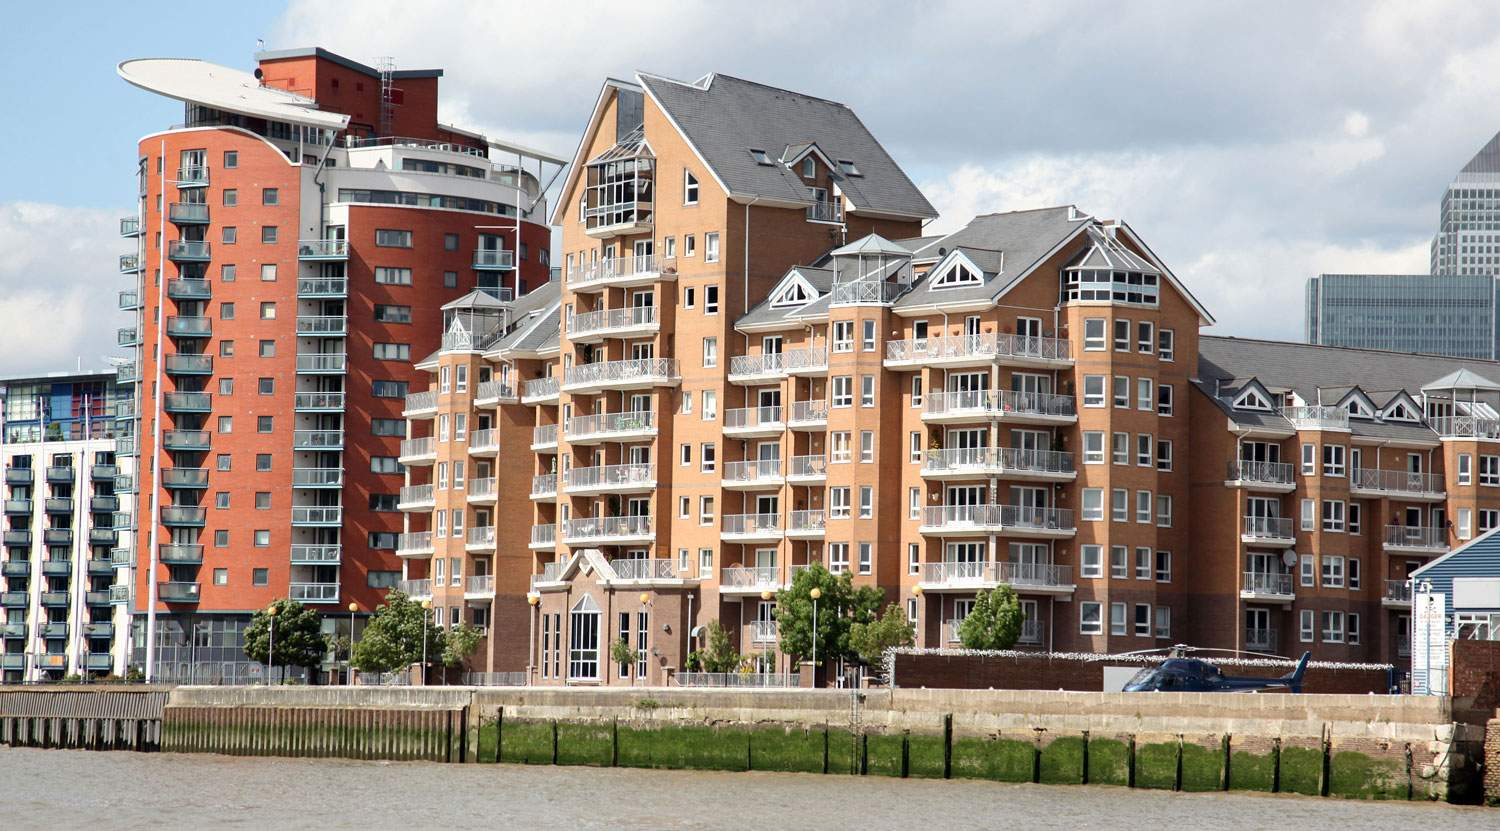 image of modern blocks of flats overlooking The Thames